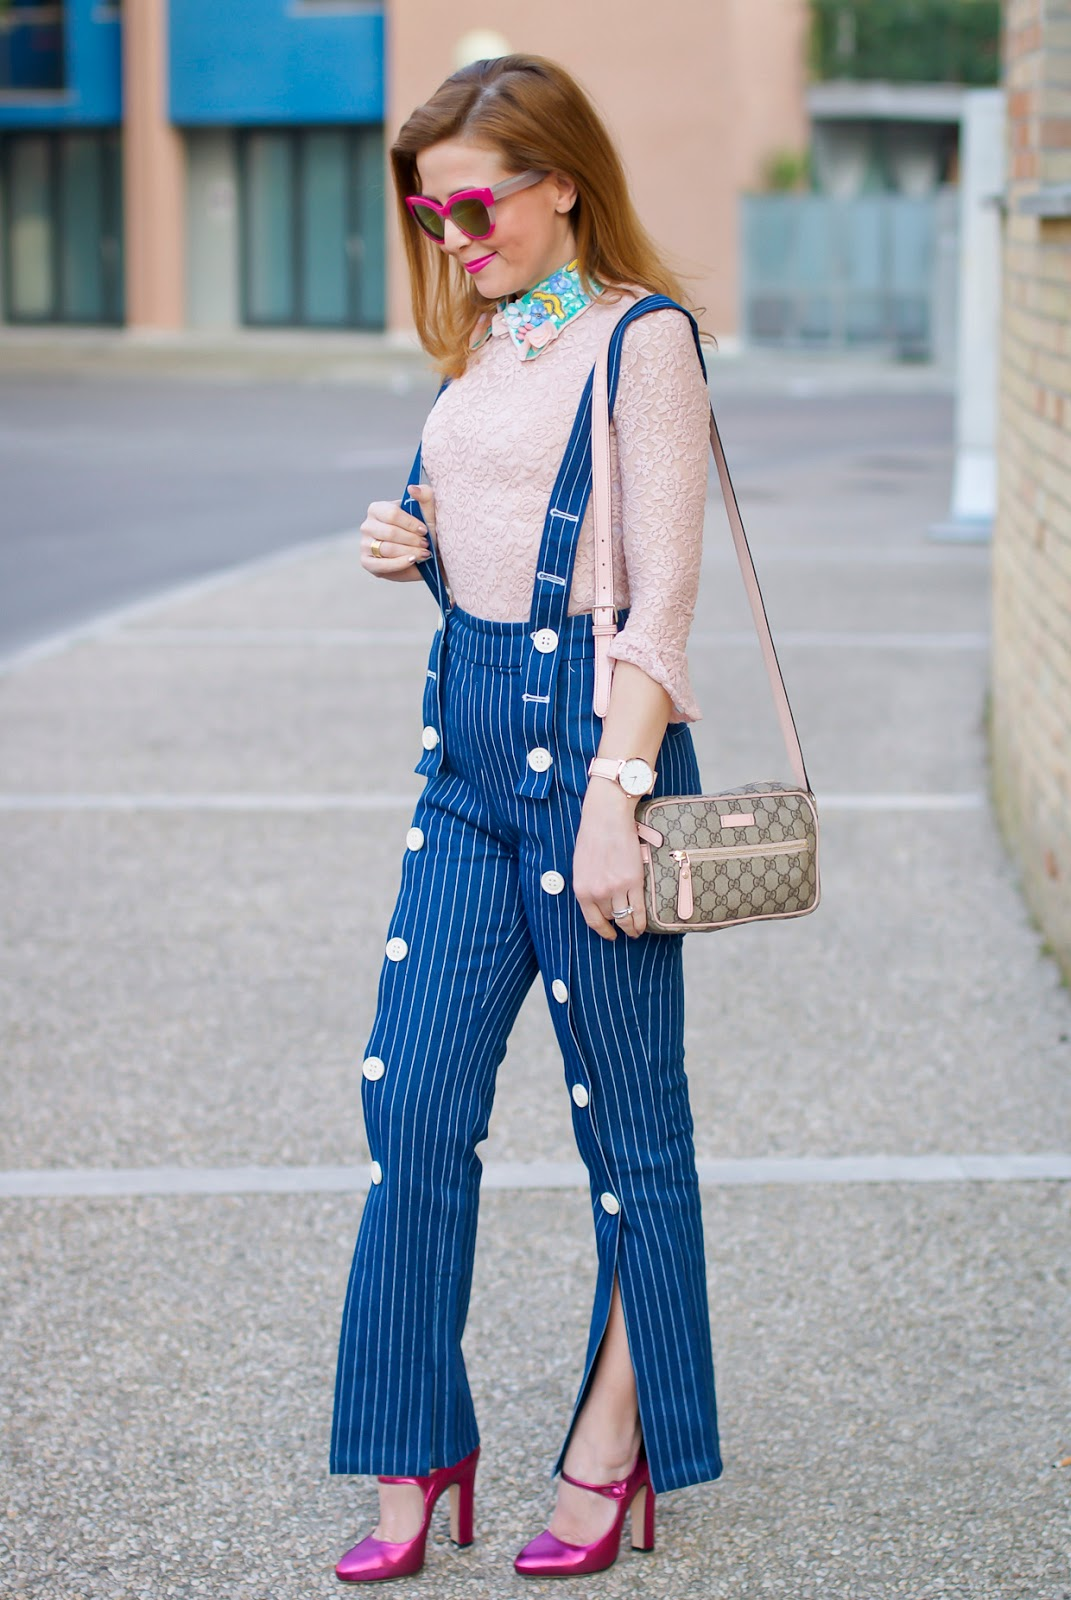 Metisu Pinstripe trousers with braces, Le Silla Mary Jane on Fashion and Cookies fashion blog, fashion blogger style